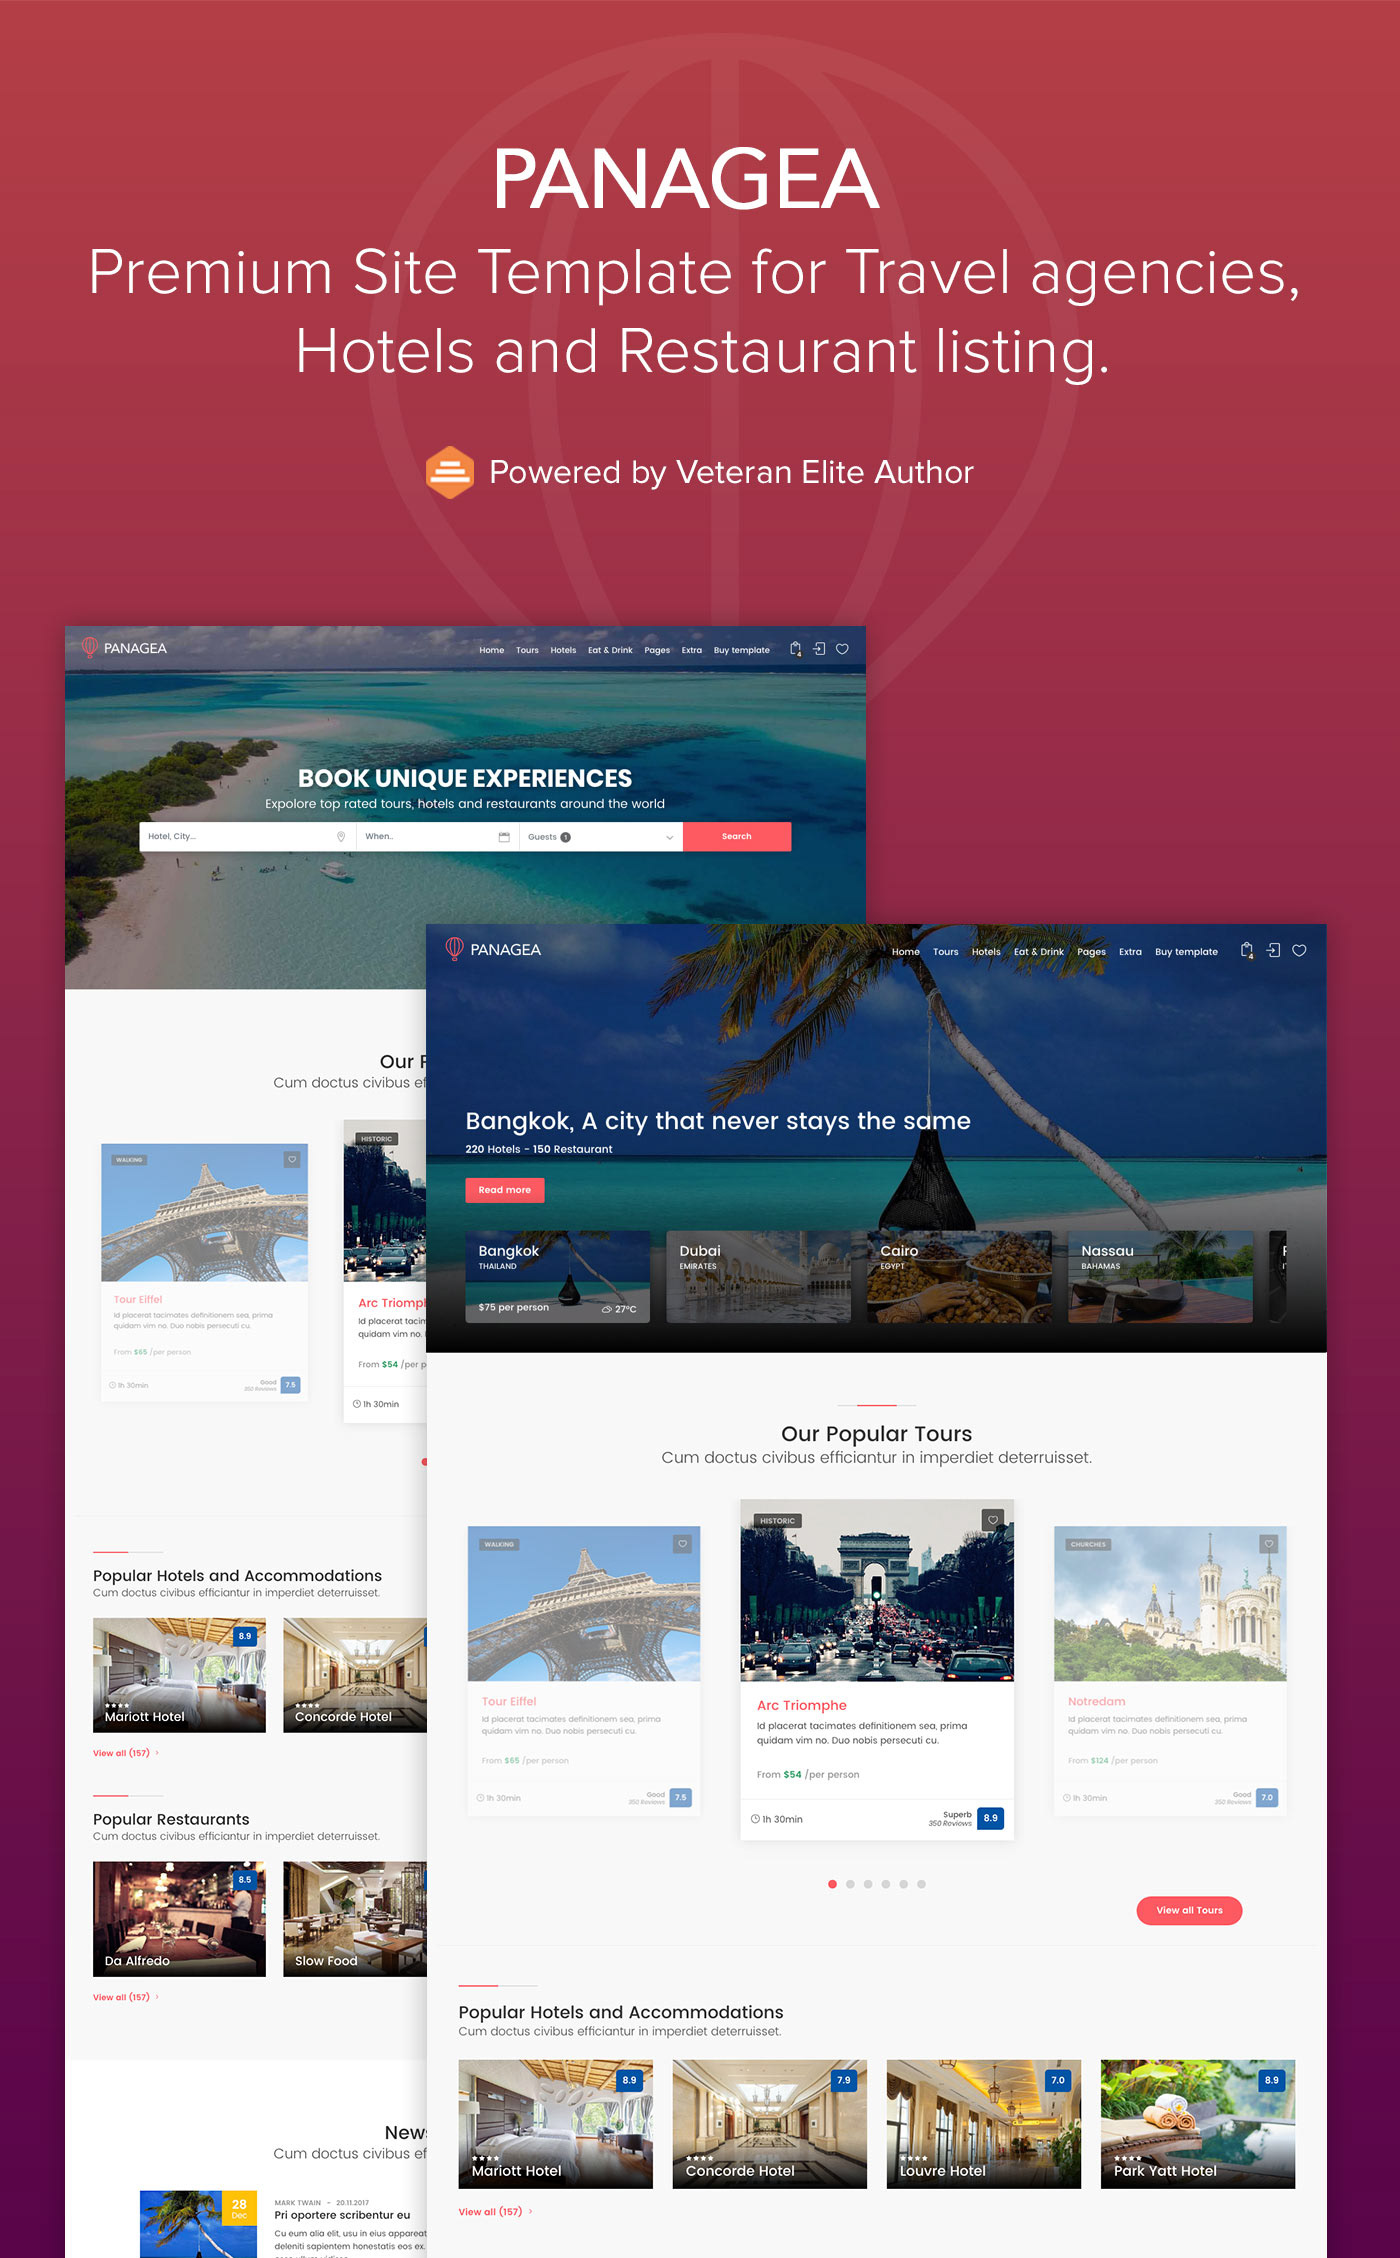 Accommodations airbnb directory Holiday hotels Listings restaurants Travel tours tourism